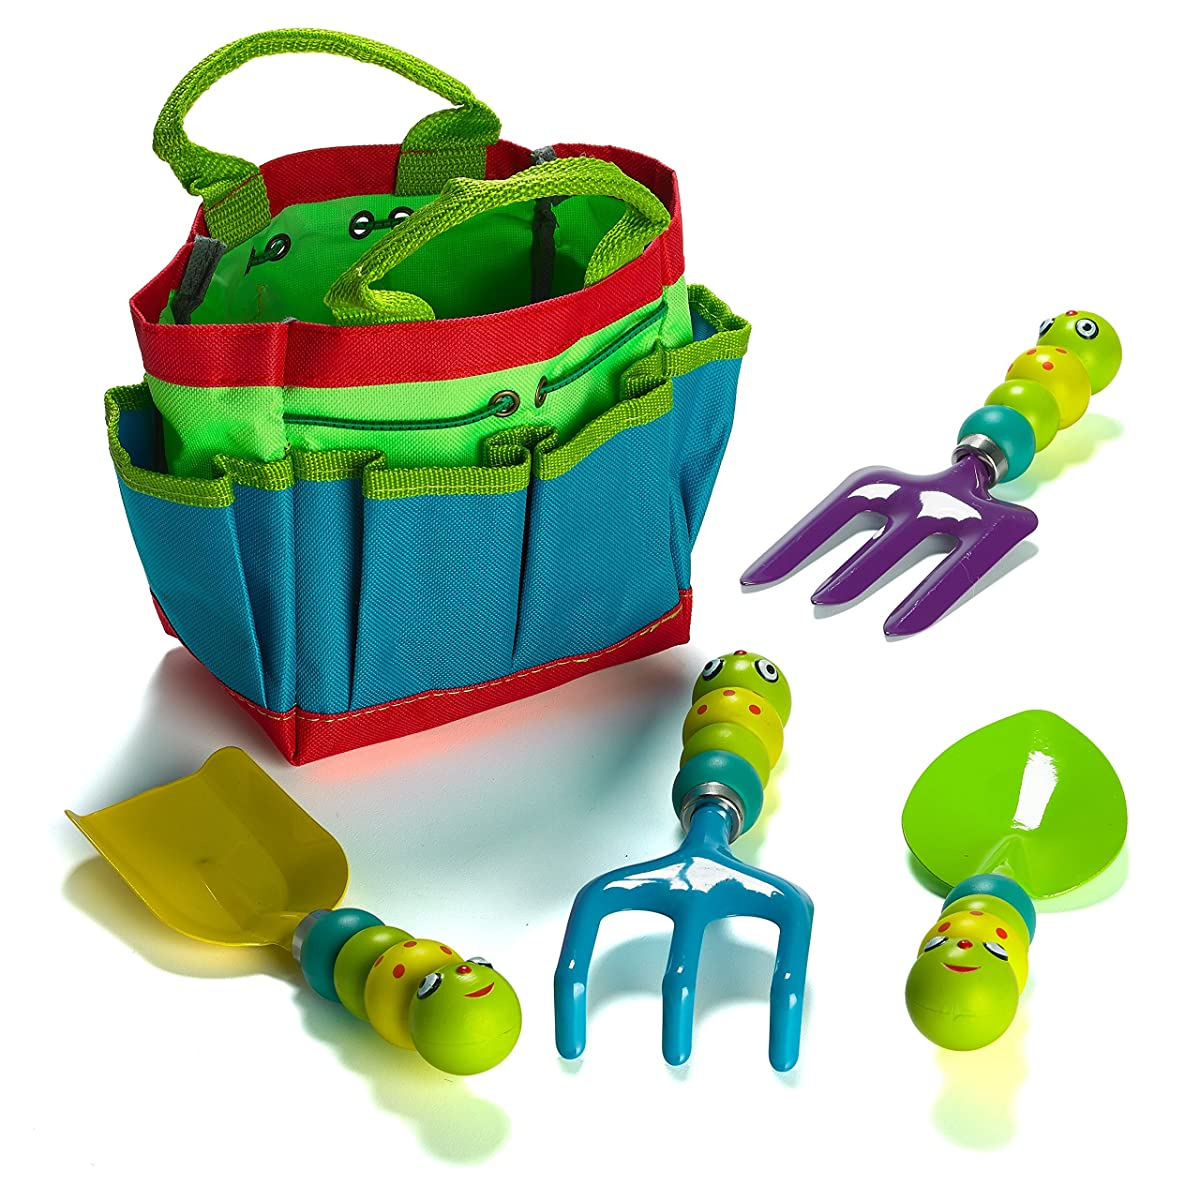 Prextex Metal, Sturdy Garden Tools, Kids Garden Tool Set Includes Canvas Tote and 4 Garden Tools with Adorable Bugs as Tool Handles